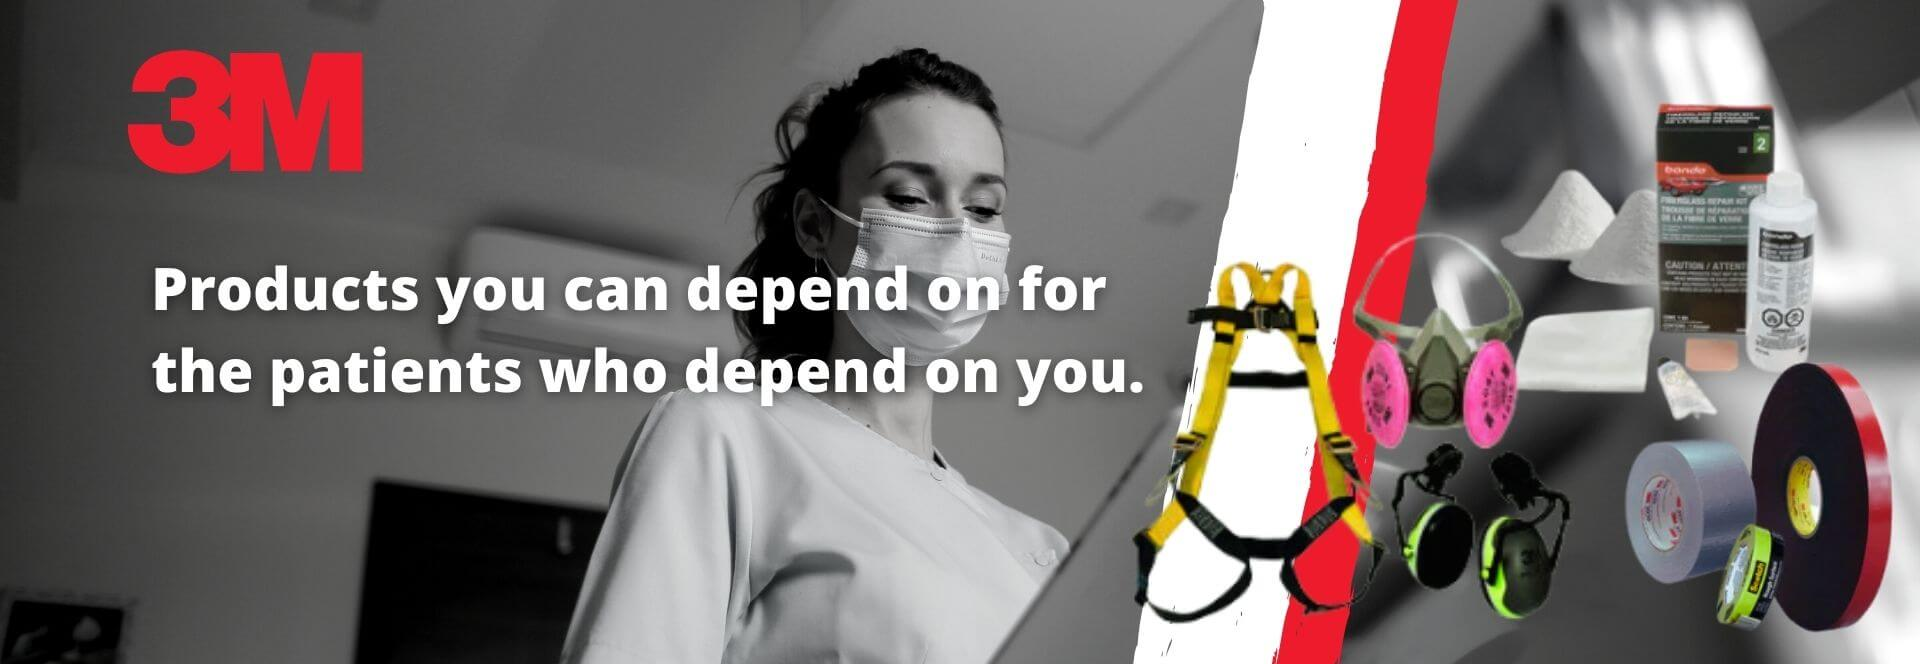 3M Healthcare Products